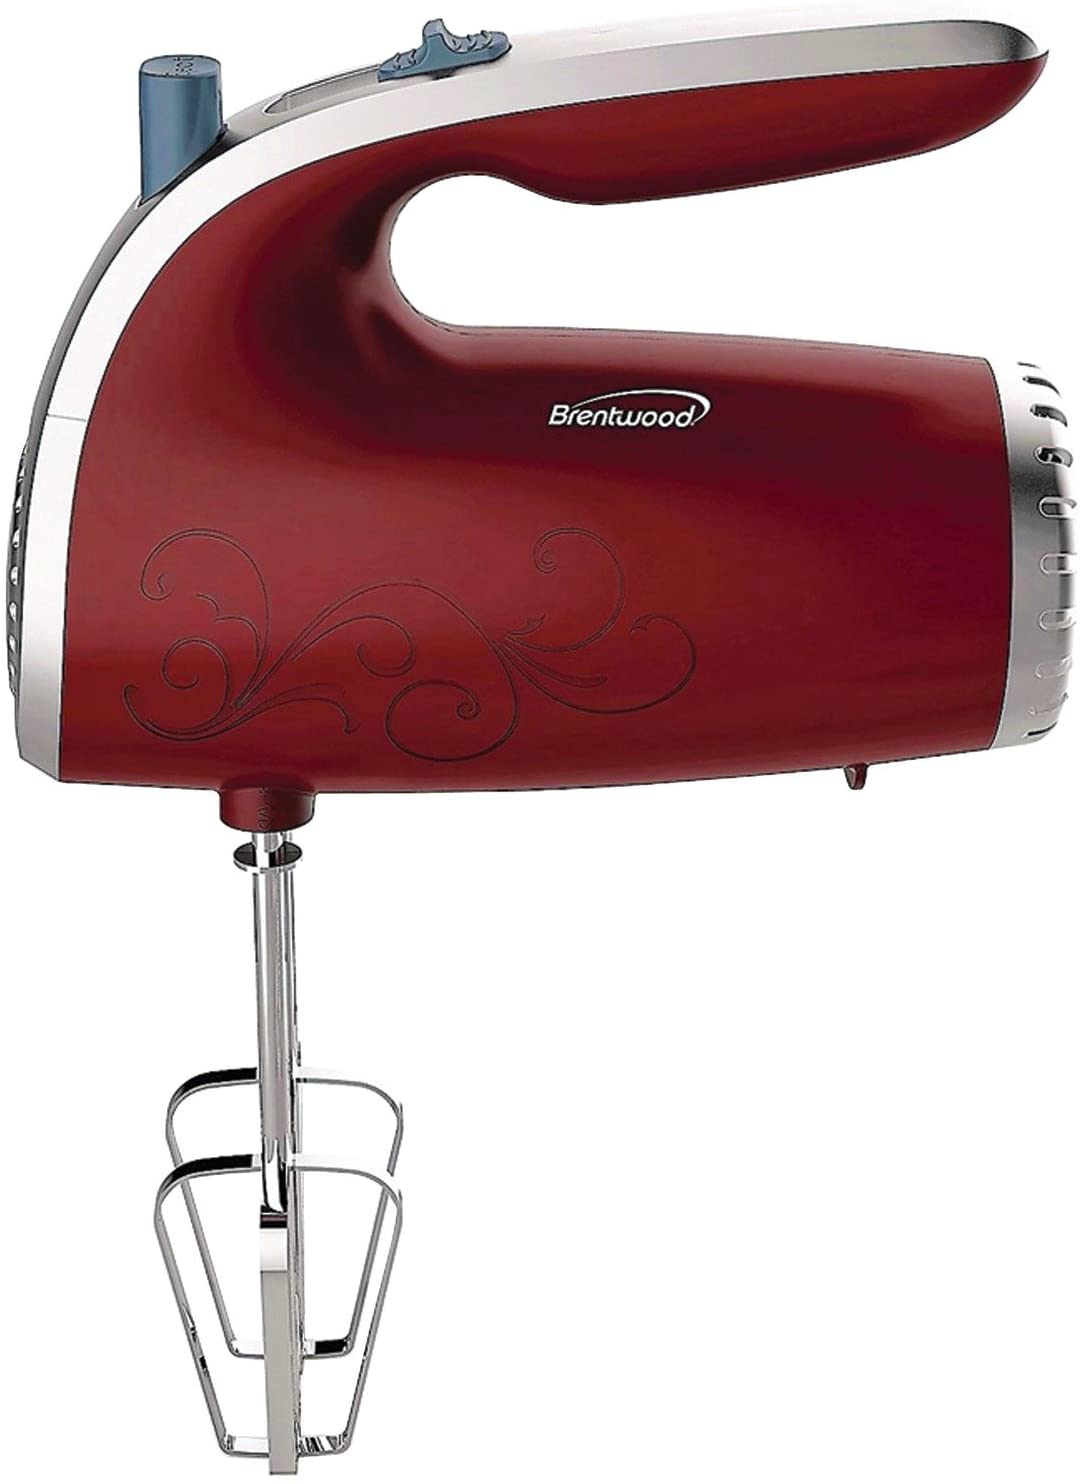 Brentwood Electric Hand Mixer, Red